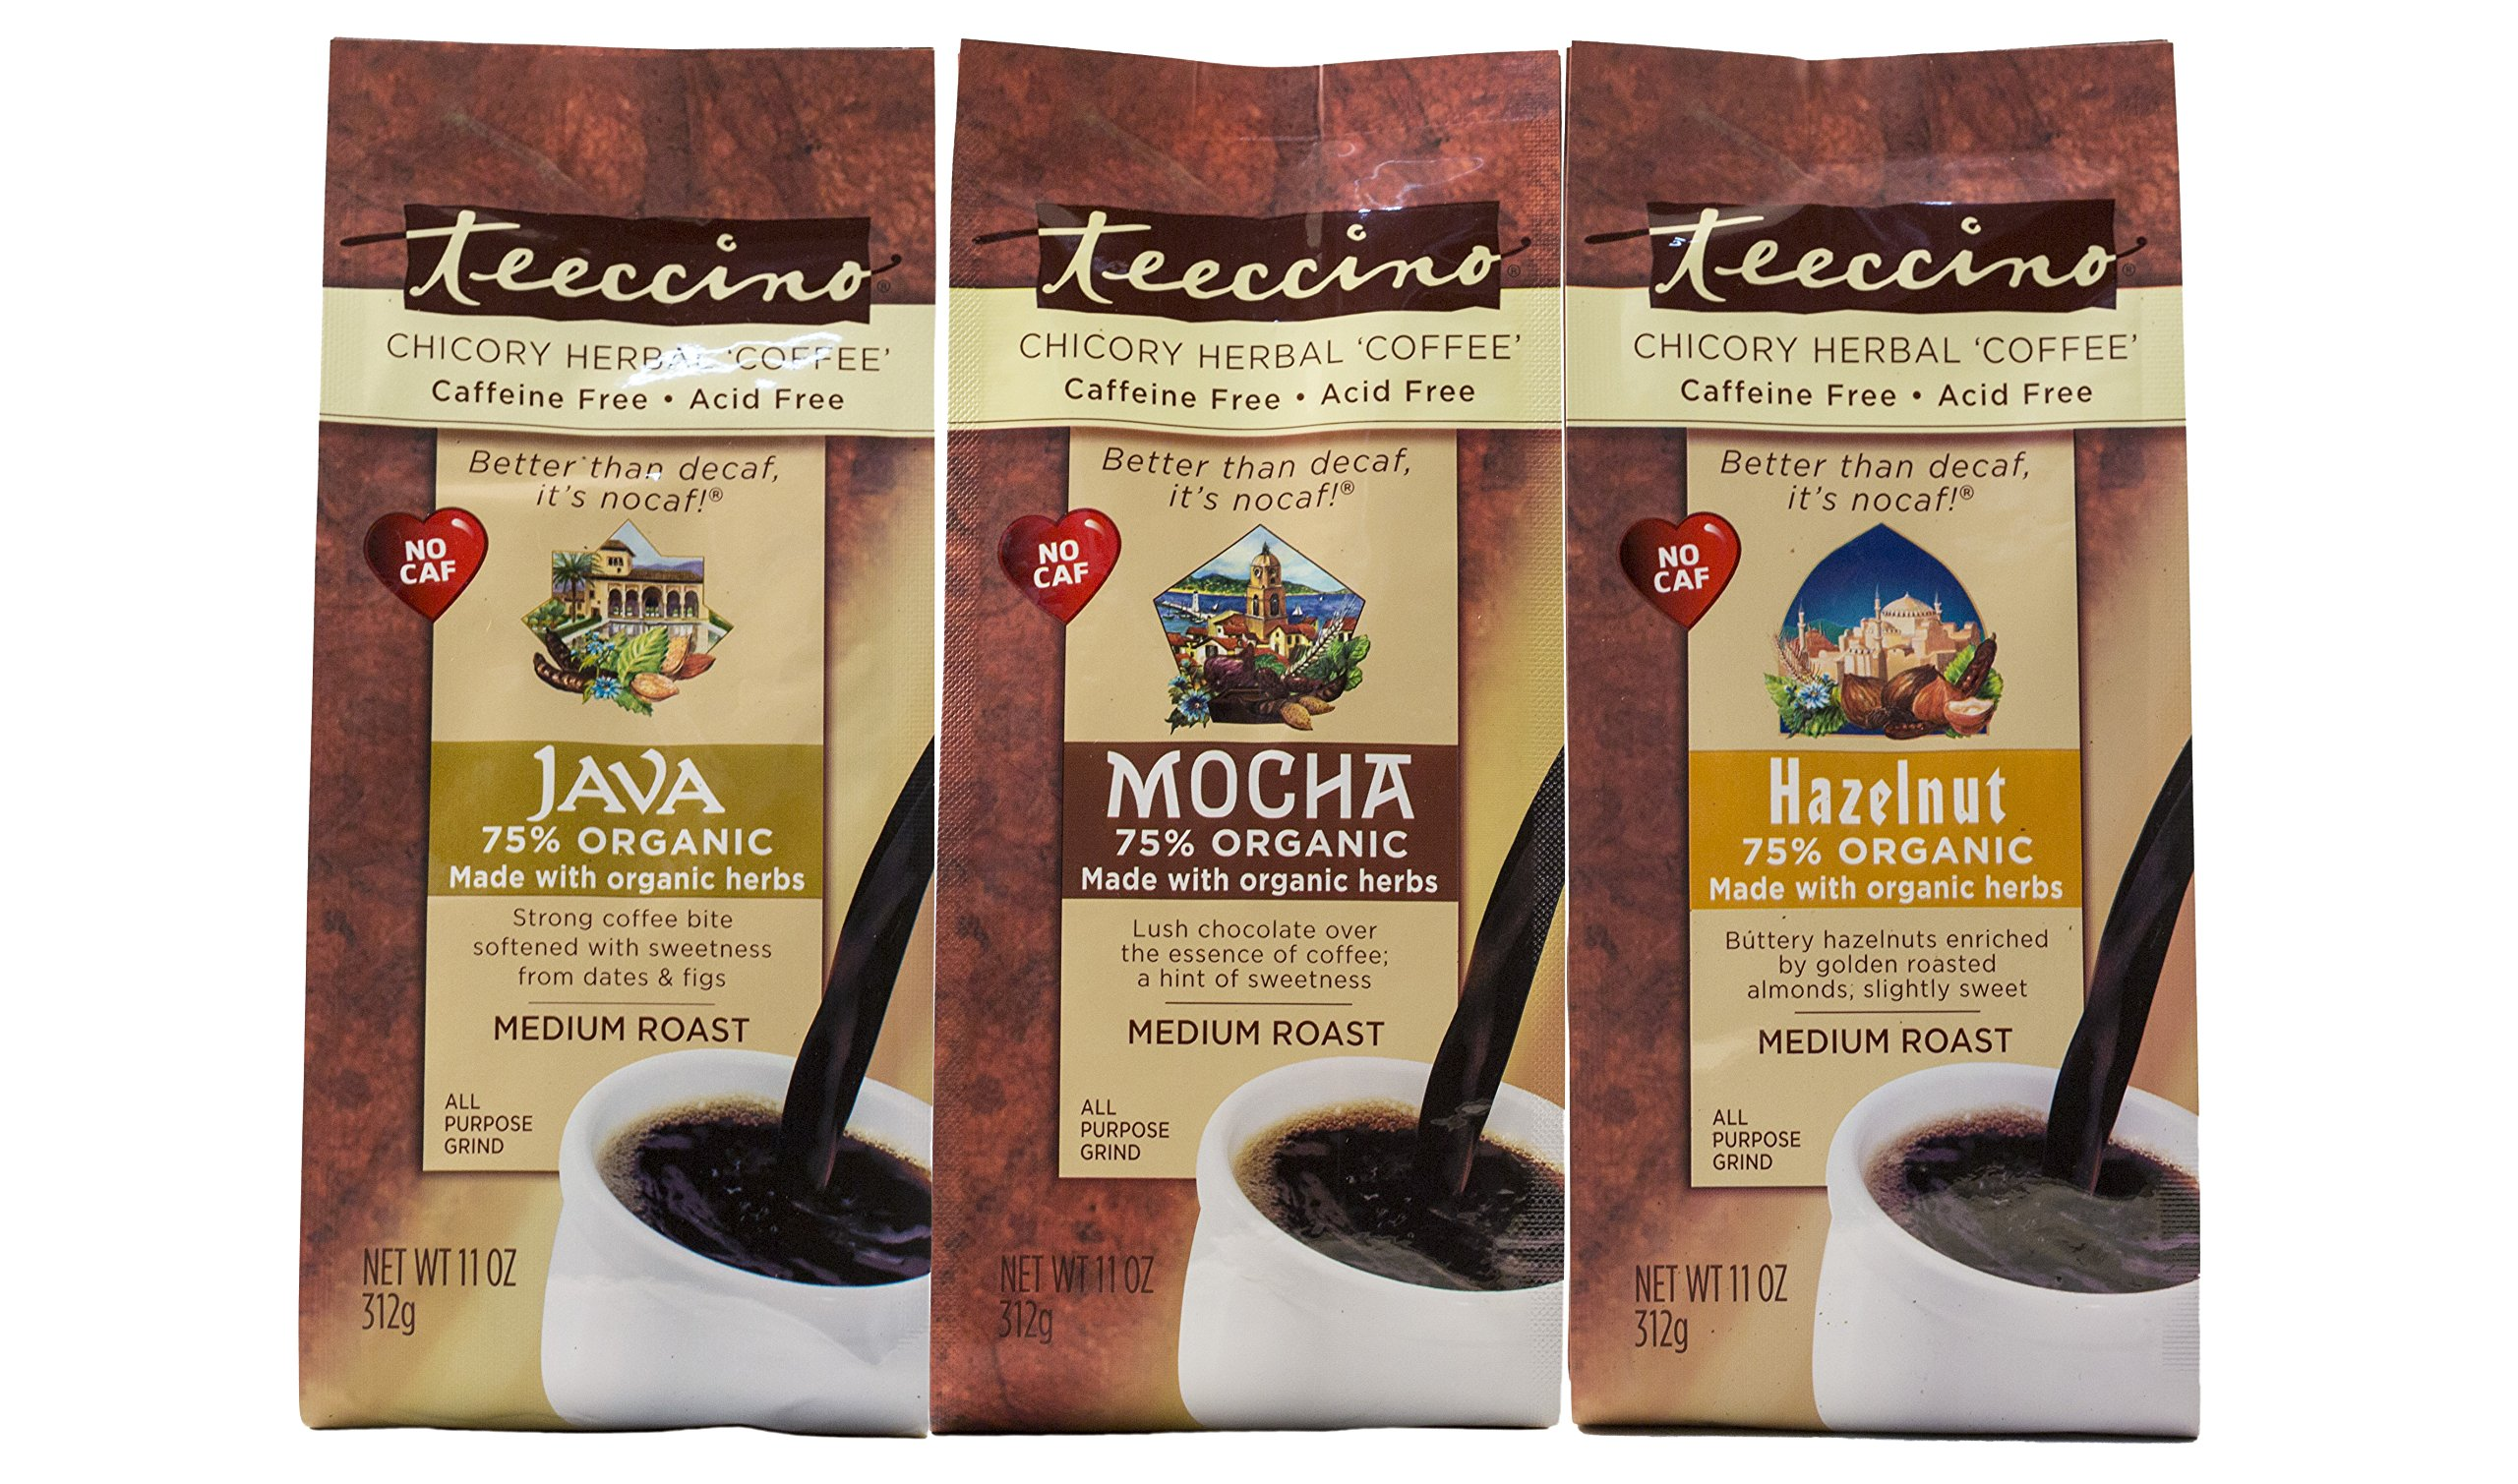 Teeccino Variety Pack (Hazelnut, Mocha, and Java) Chicory Herbal Coffee, Caffeine Free, Acid Free, 11 Ounce (Pack of 3)